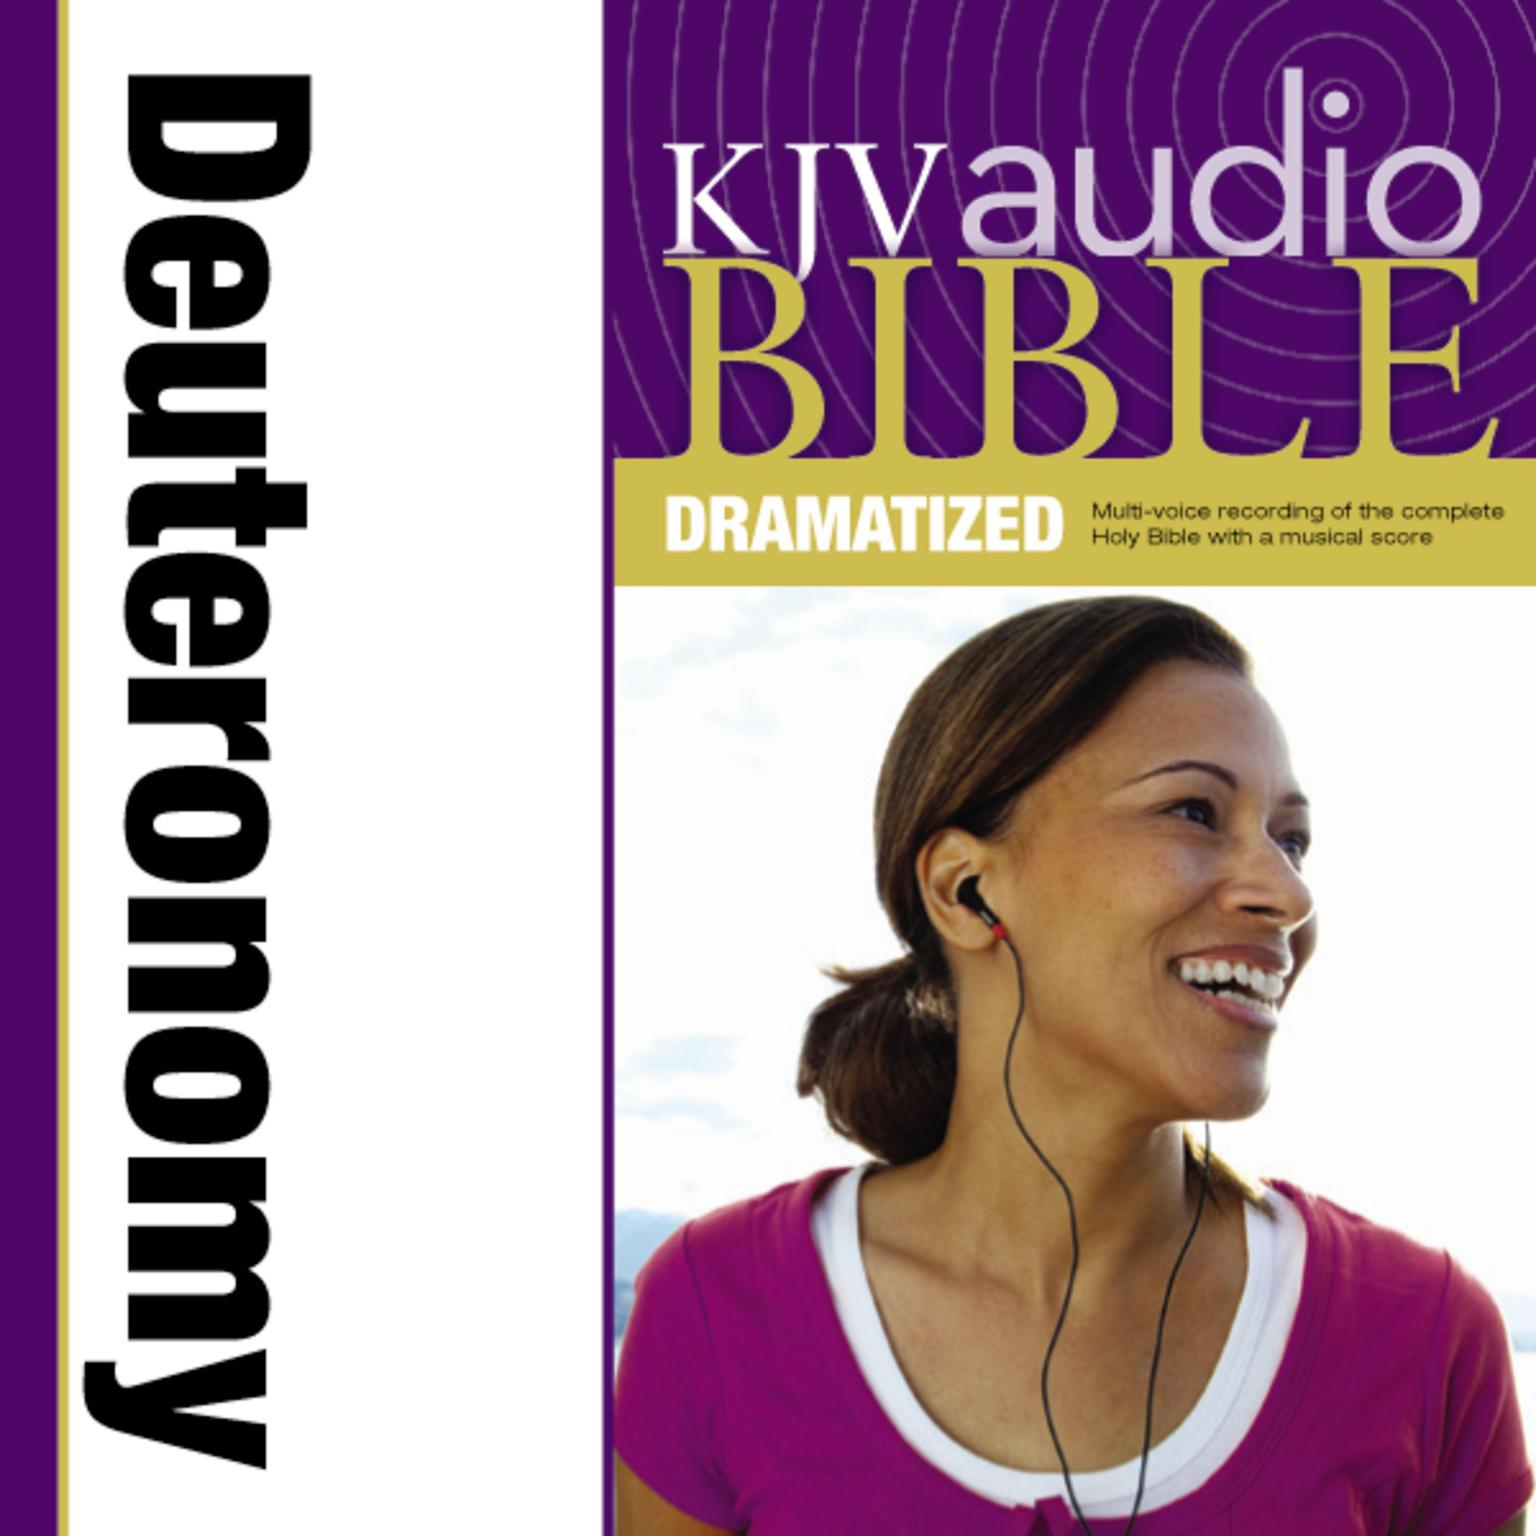 Printable KJV, Audio Bible, Dramatized: Deuteronomy, Audio Download Audiobook Cover Art